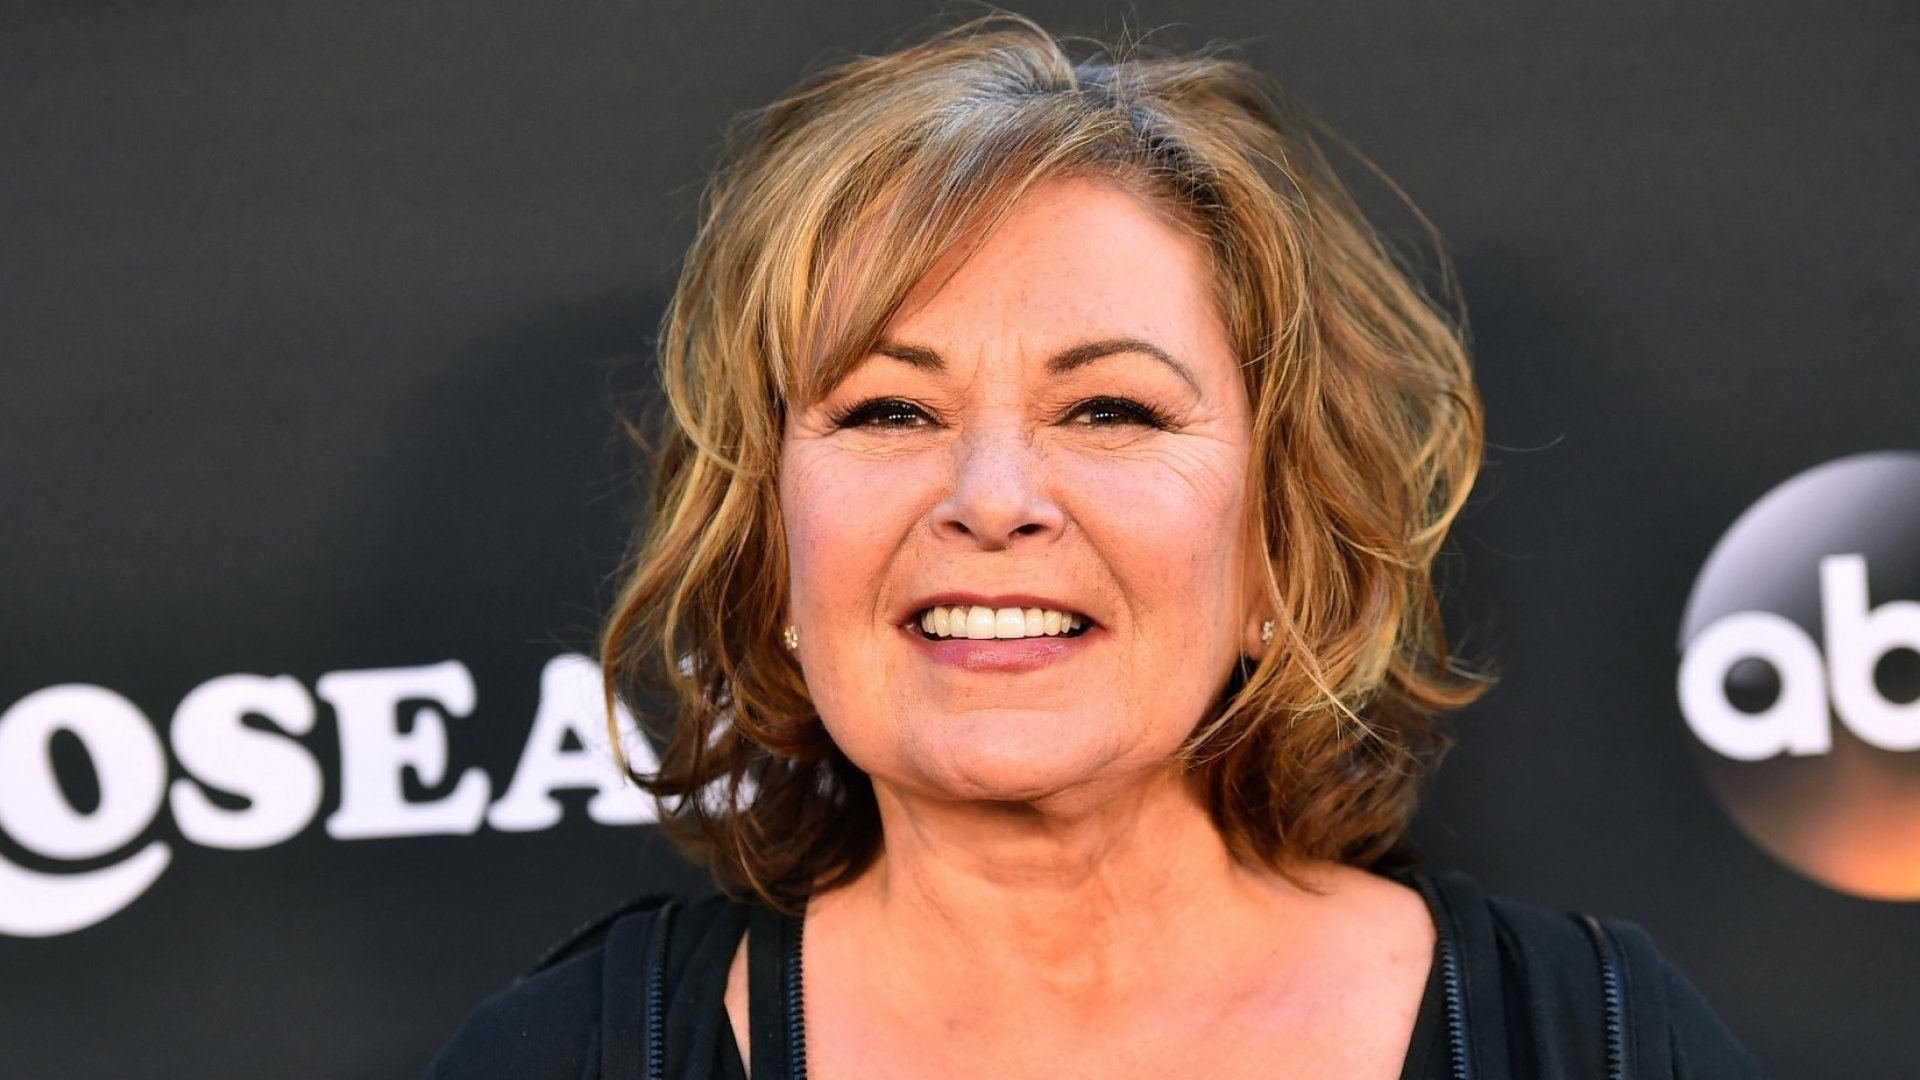 Ambien's Maker Just Responded to Roseanne Barr. Here's Why I Would Have Stayed Quiet Instead